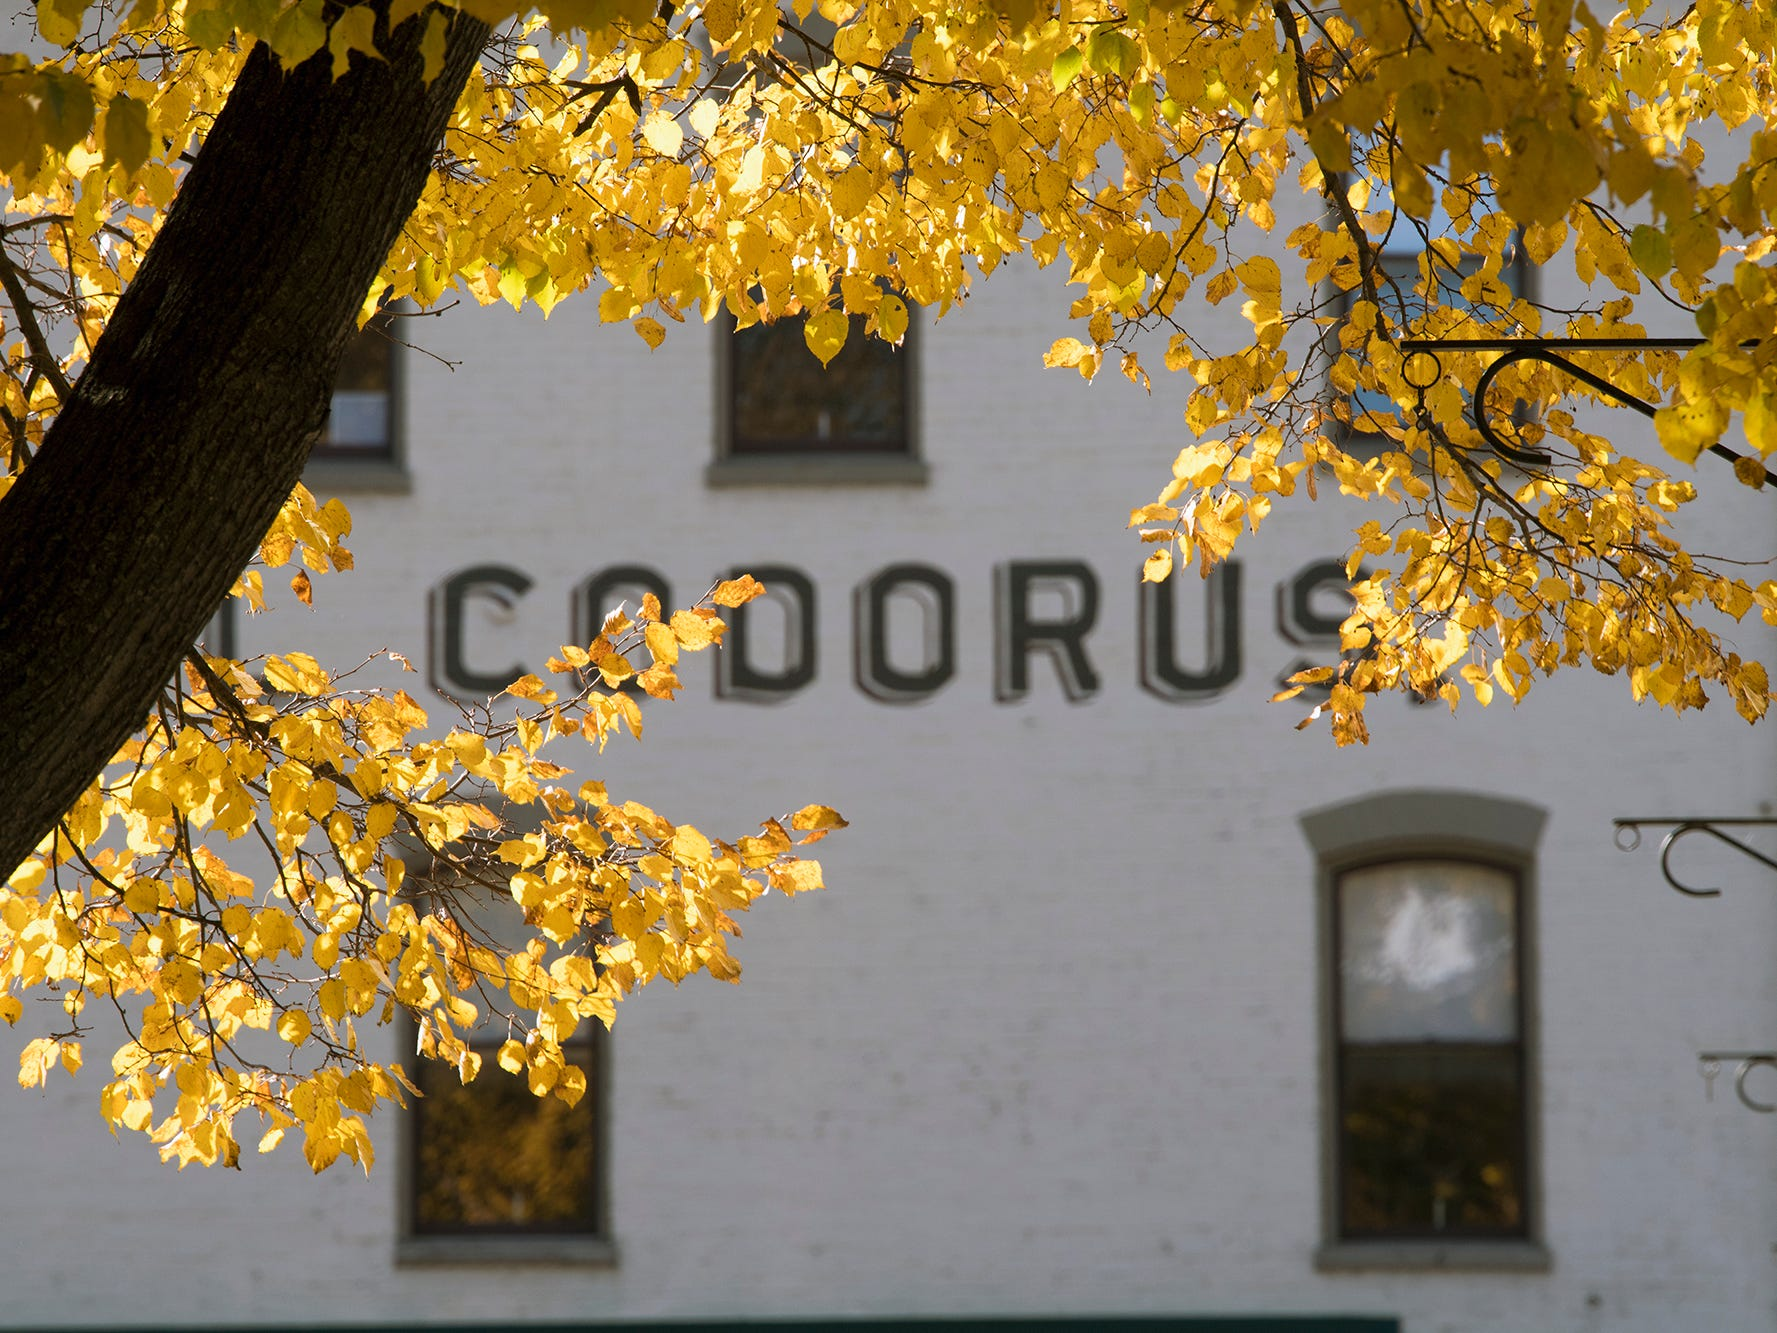 The Codorus Hotel building highlighting by golden leaves along the Codorus Creek in York Sunday November 4, 2018.